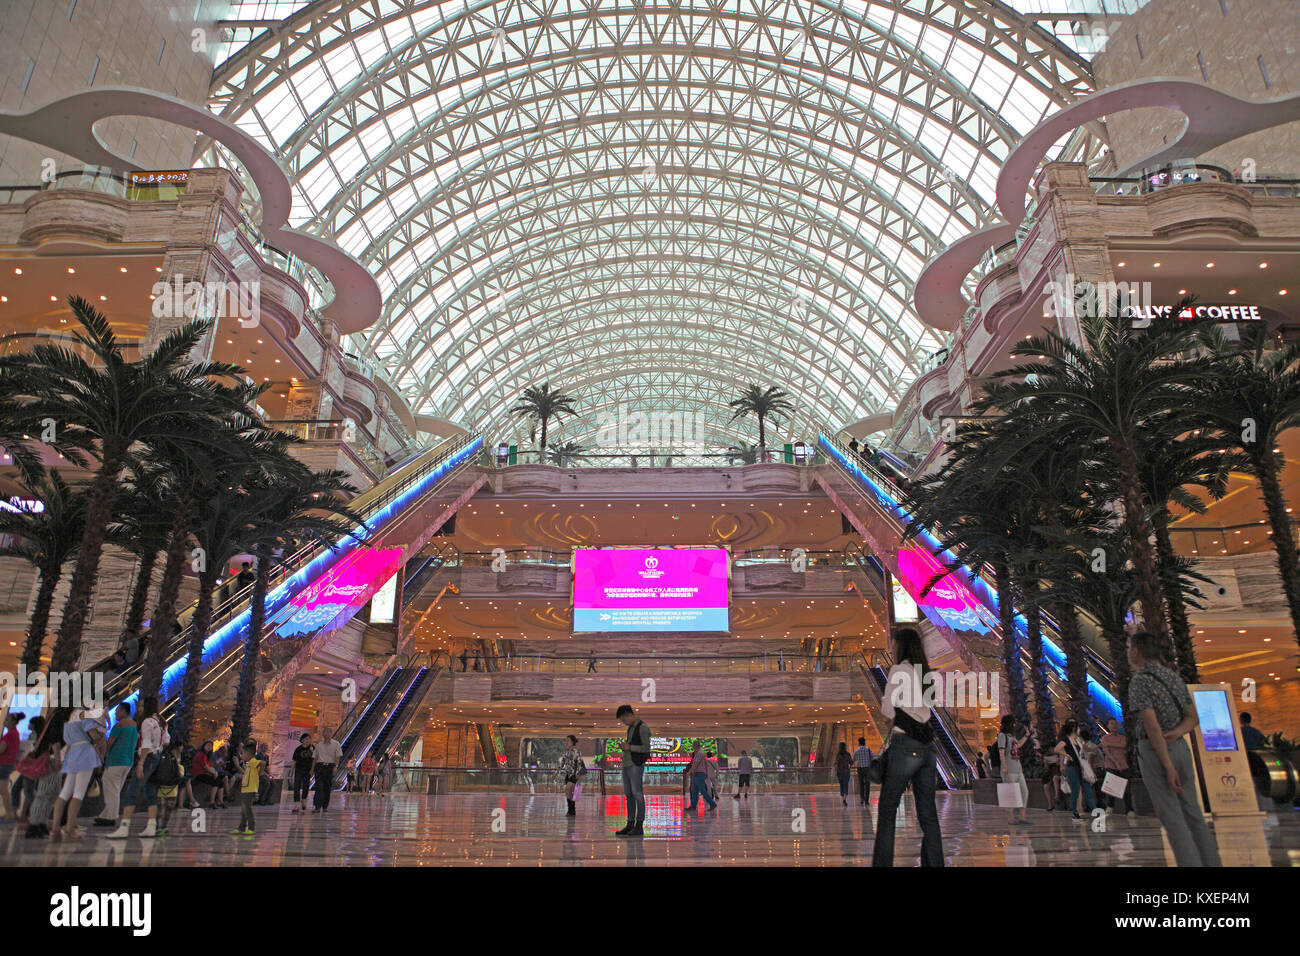 New Century Global Center, Chengdu, Sichuan, China - Stock Image